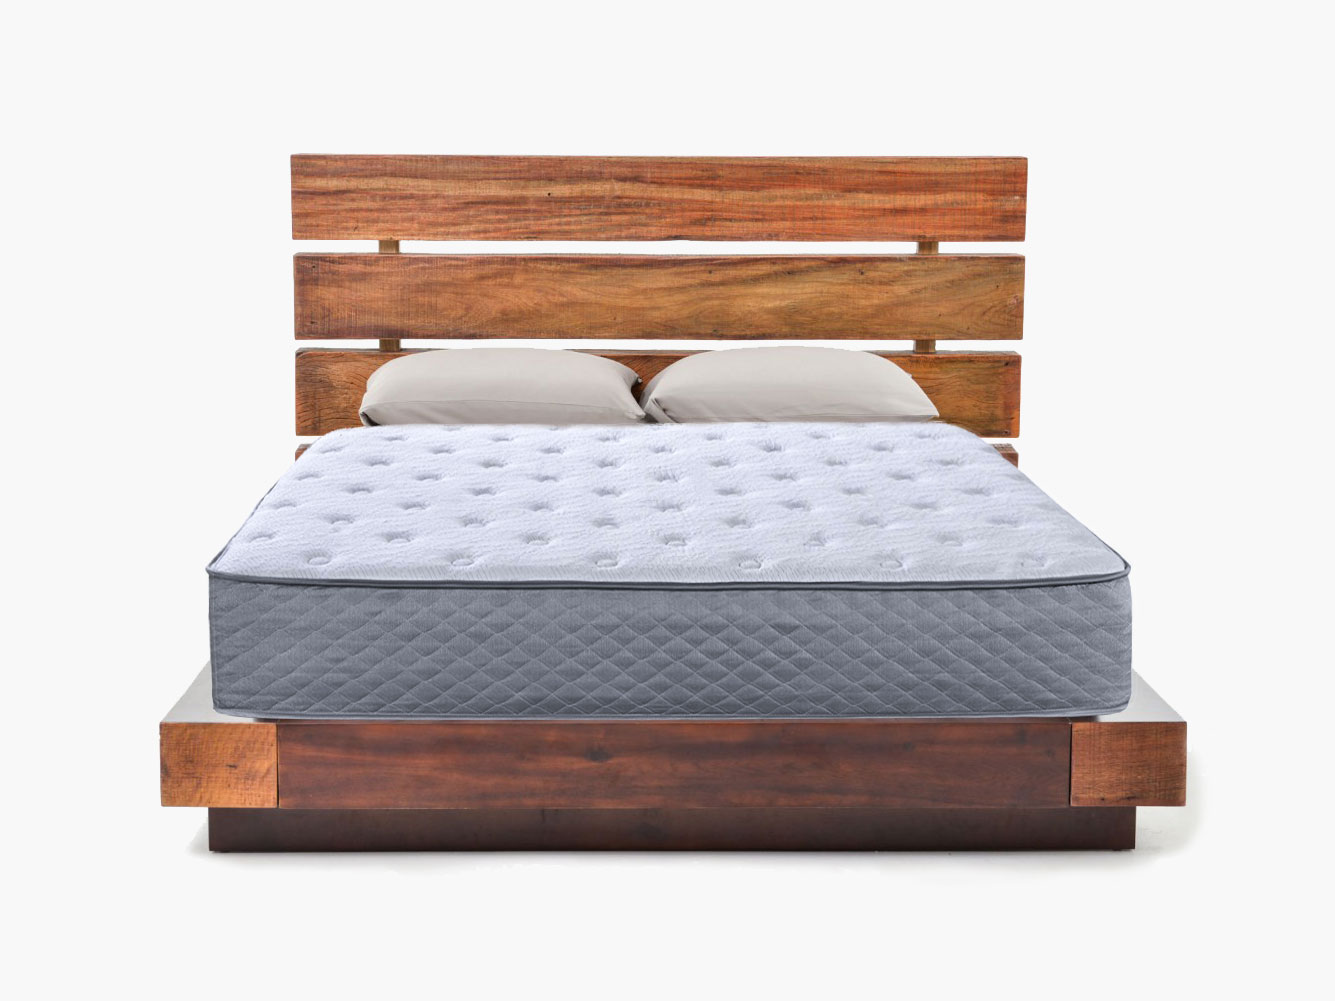 STYLISH HEIGHT FOR PLATFORM BEDS - Comfy Sleep for You